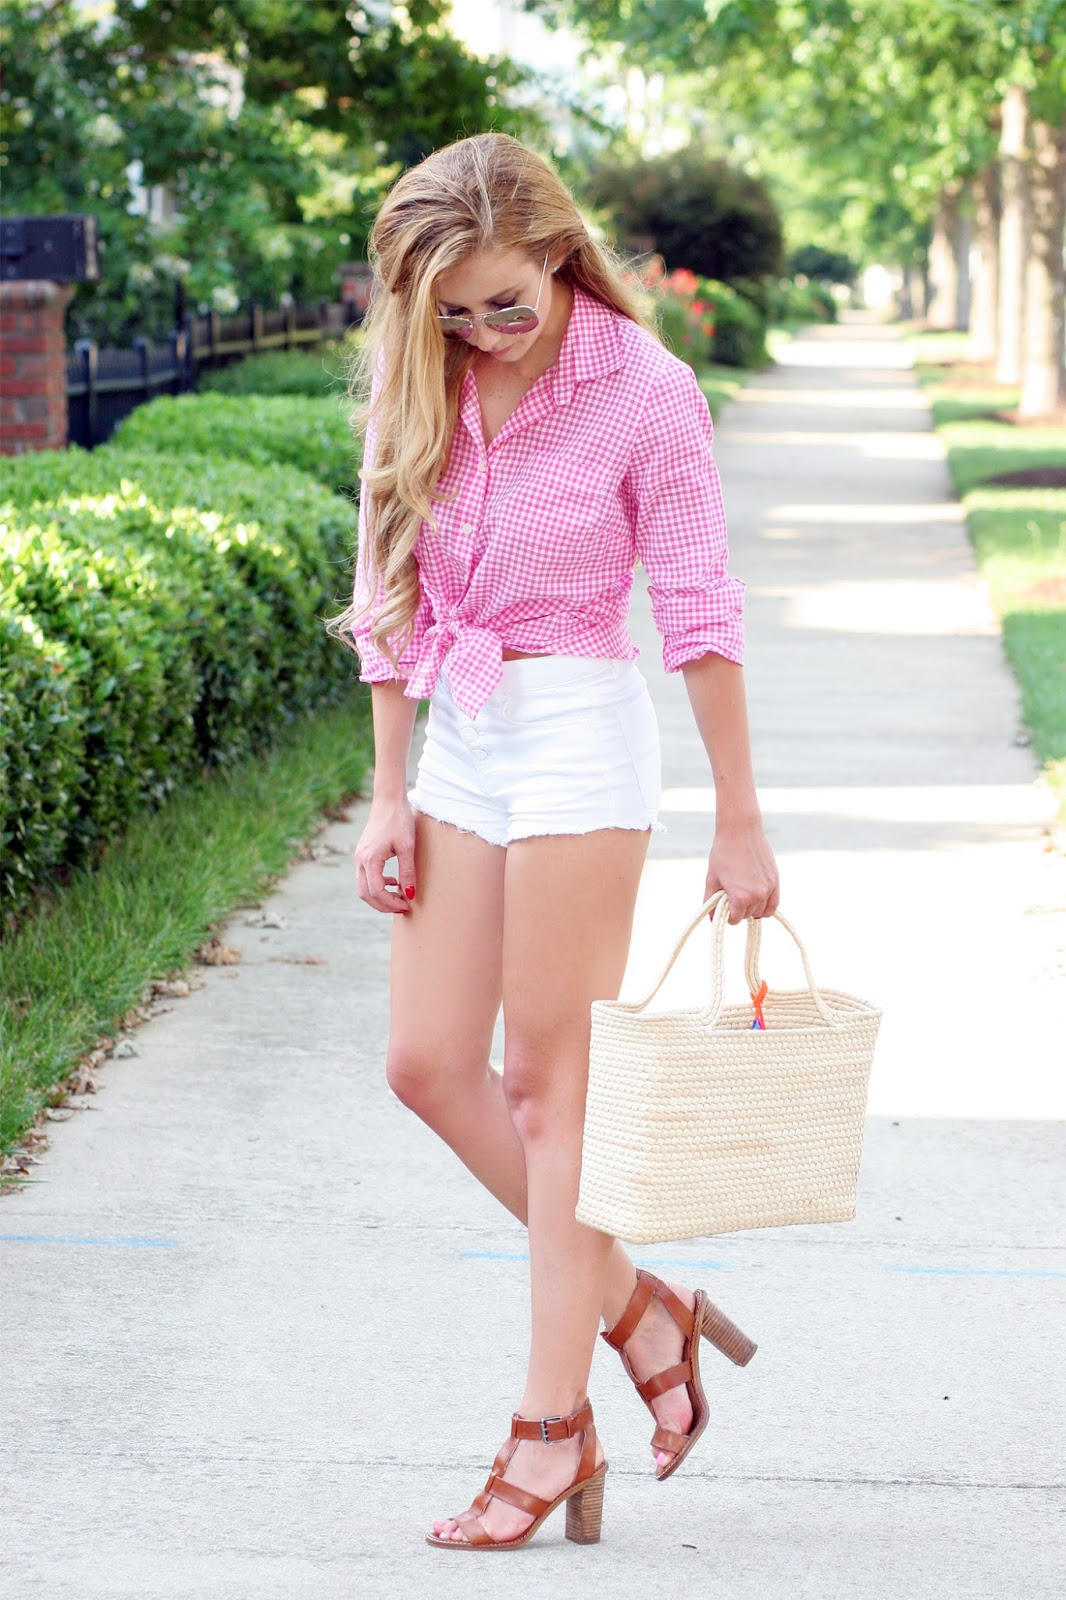 Summer-beach-everyday-street-style-simple-gingham-and-white-look